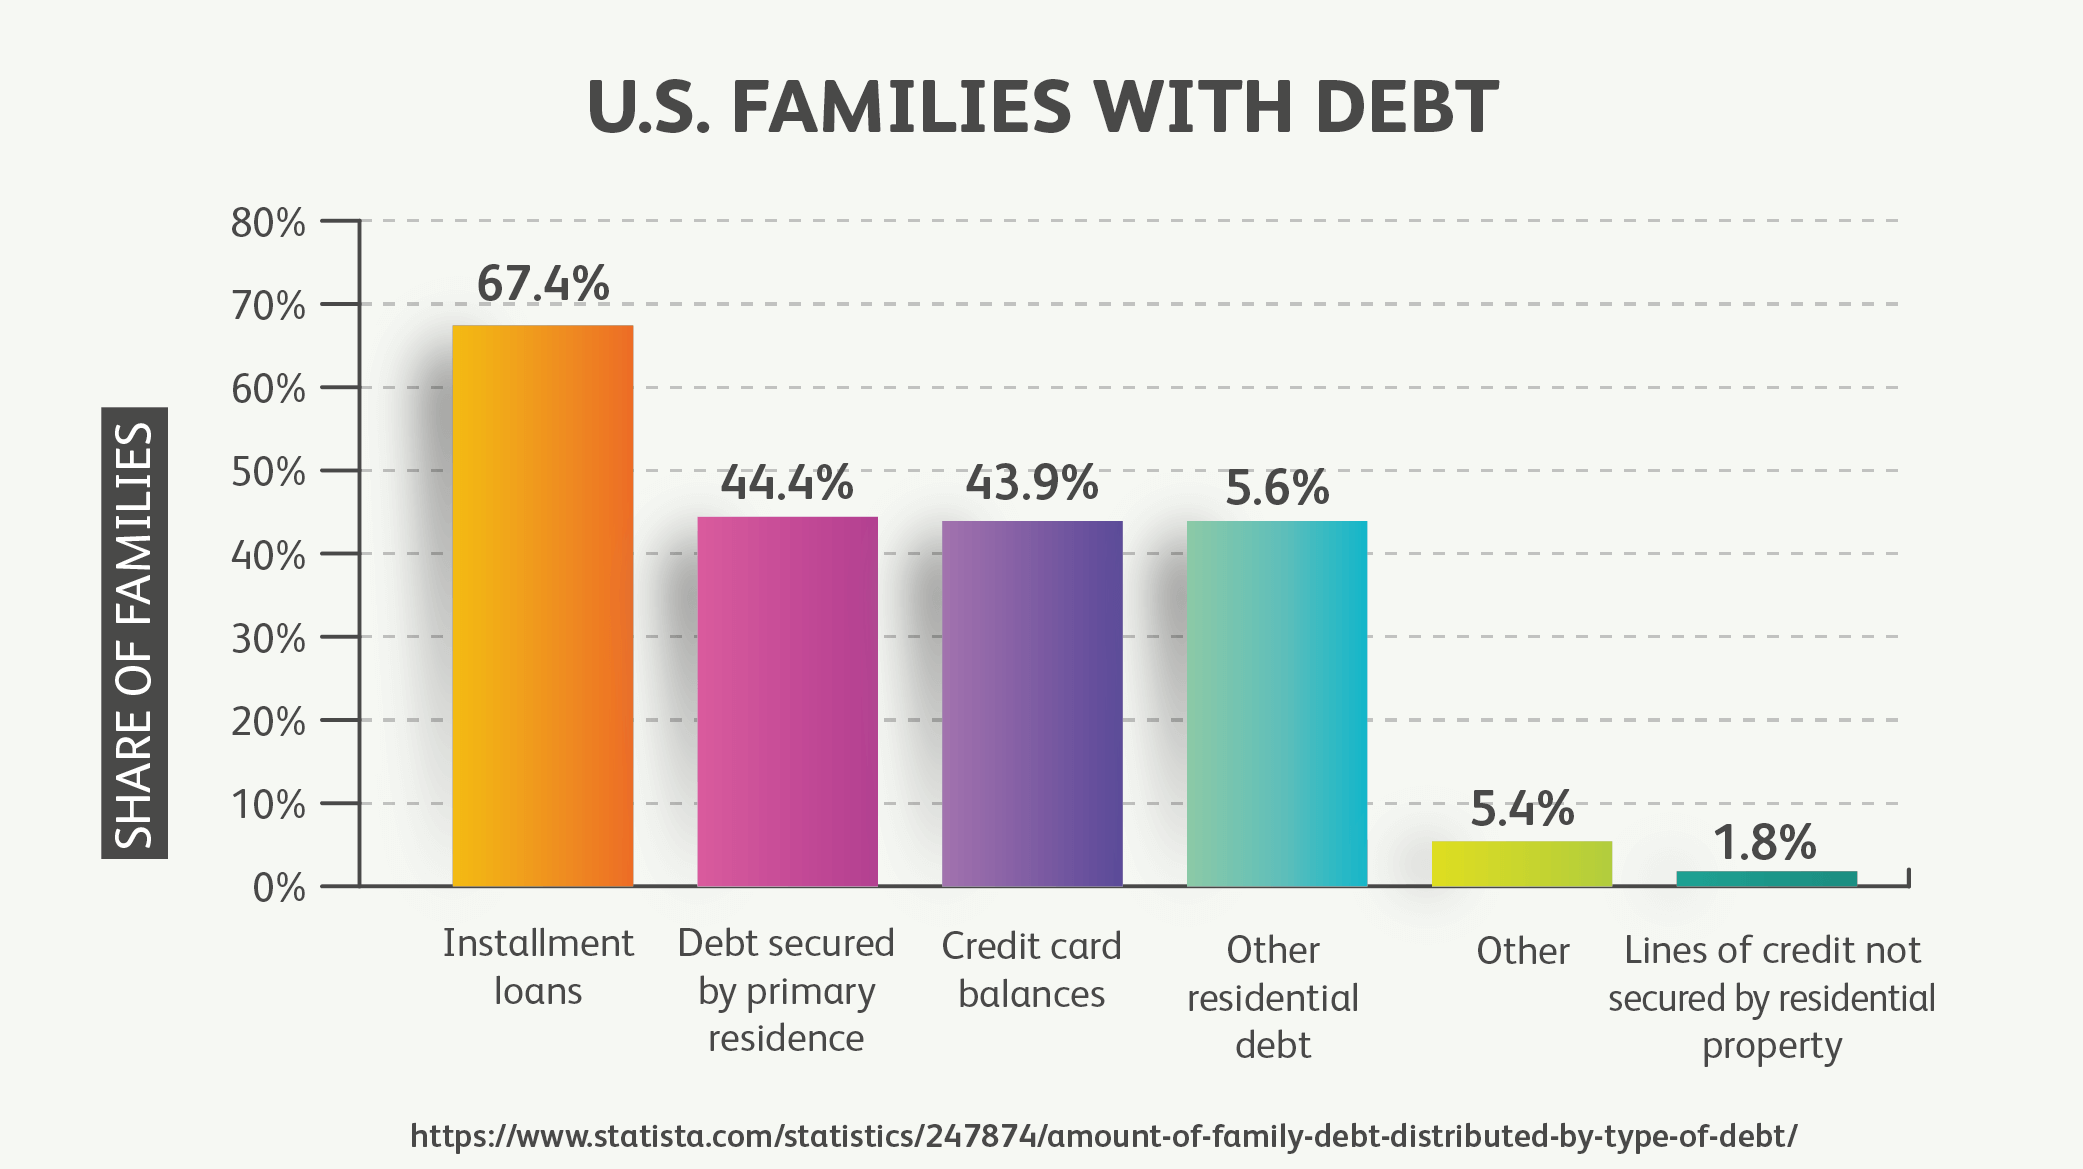 U.S. Families With Debt